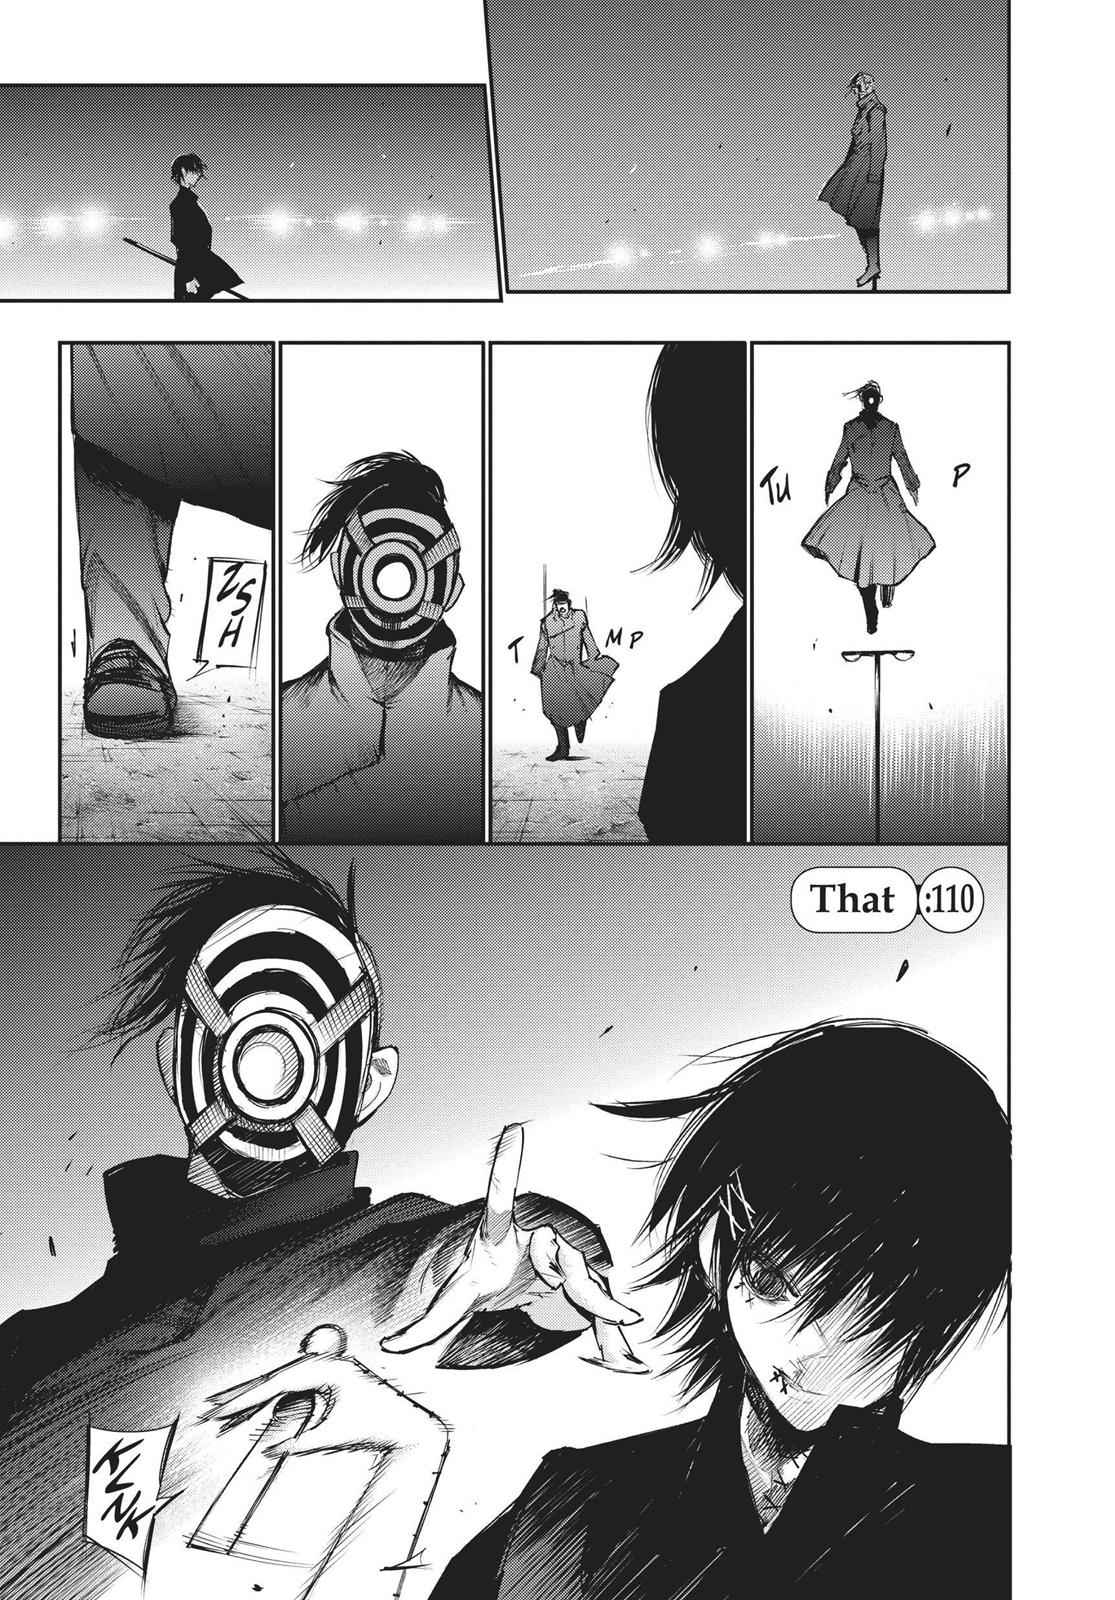 Tokyo Ghoul:re Chapter 110 Page 1